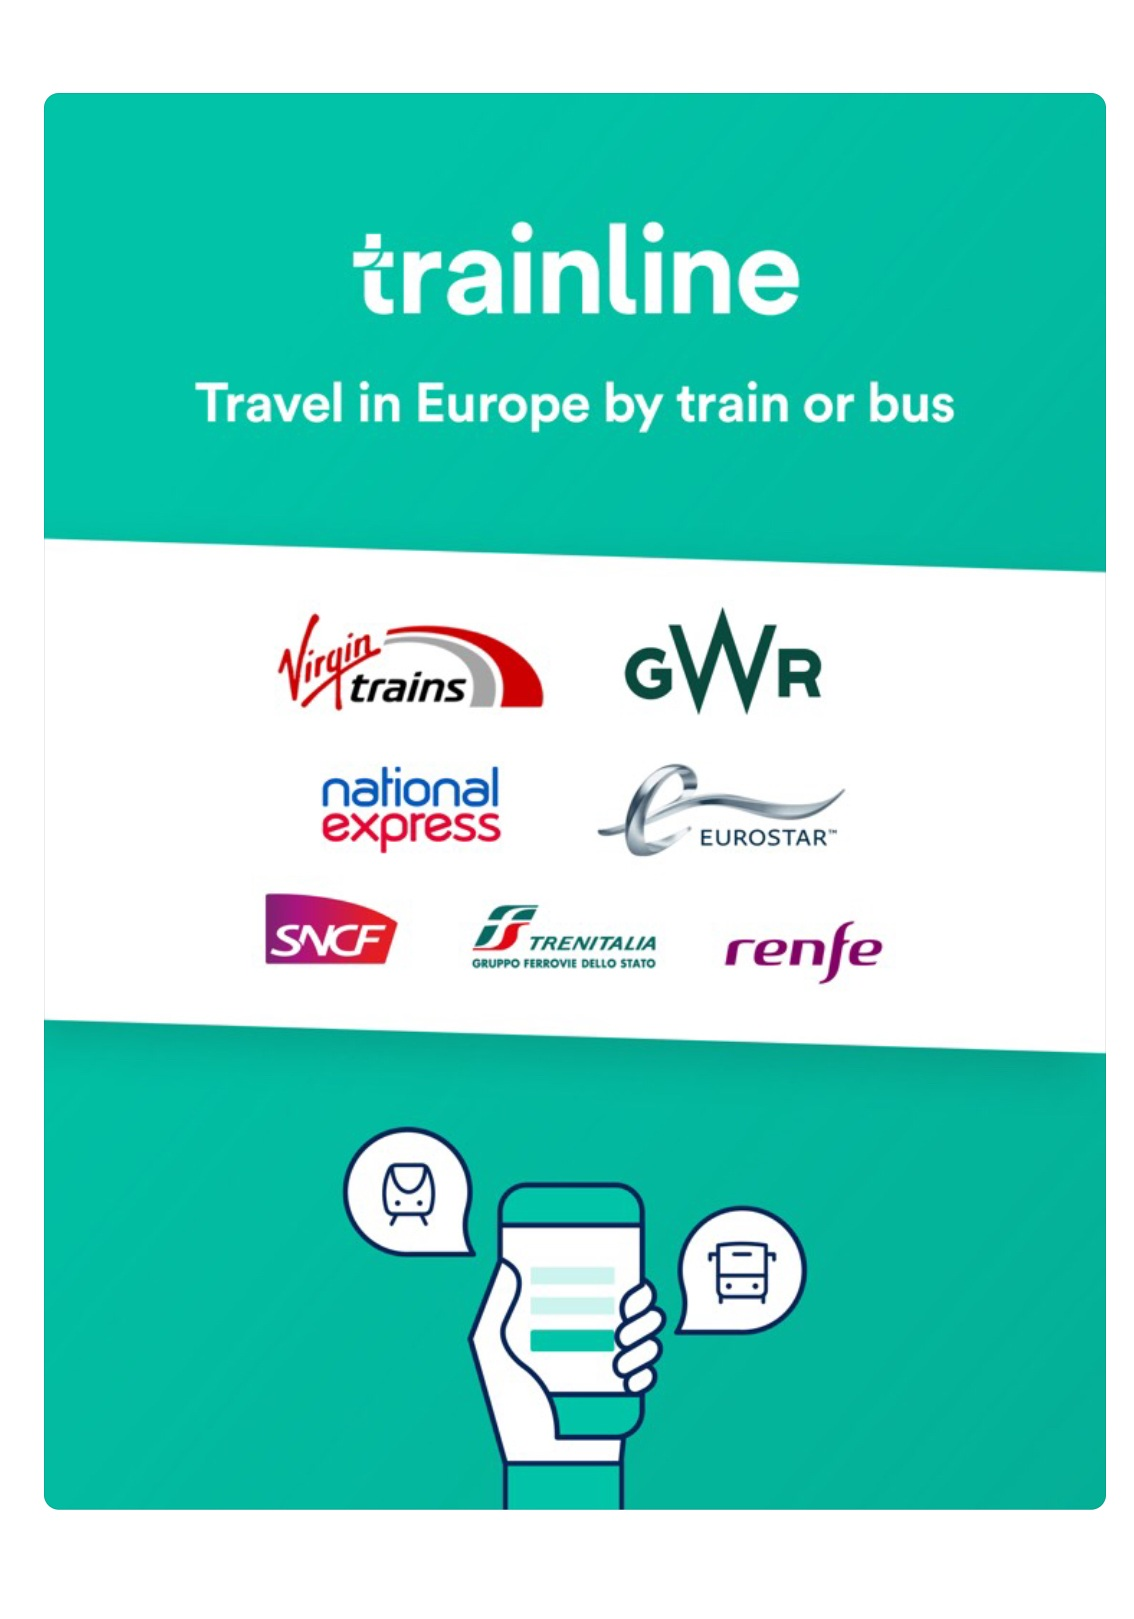 trainline: A search engine for train or bus prices. You can book tickets in this app. - May use multiple train lines/buses to get you to your destination.